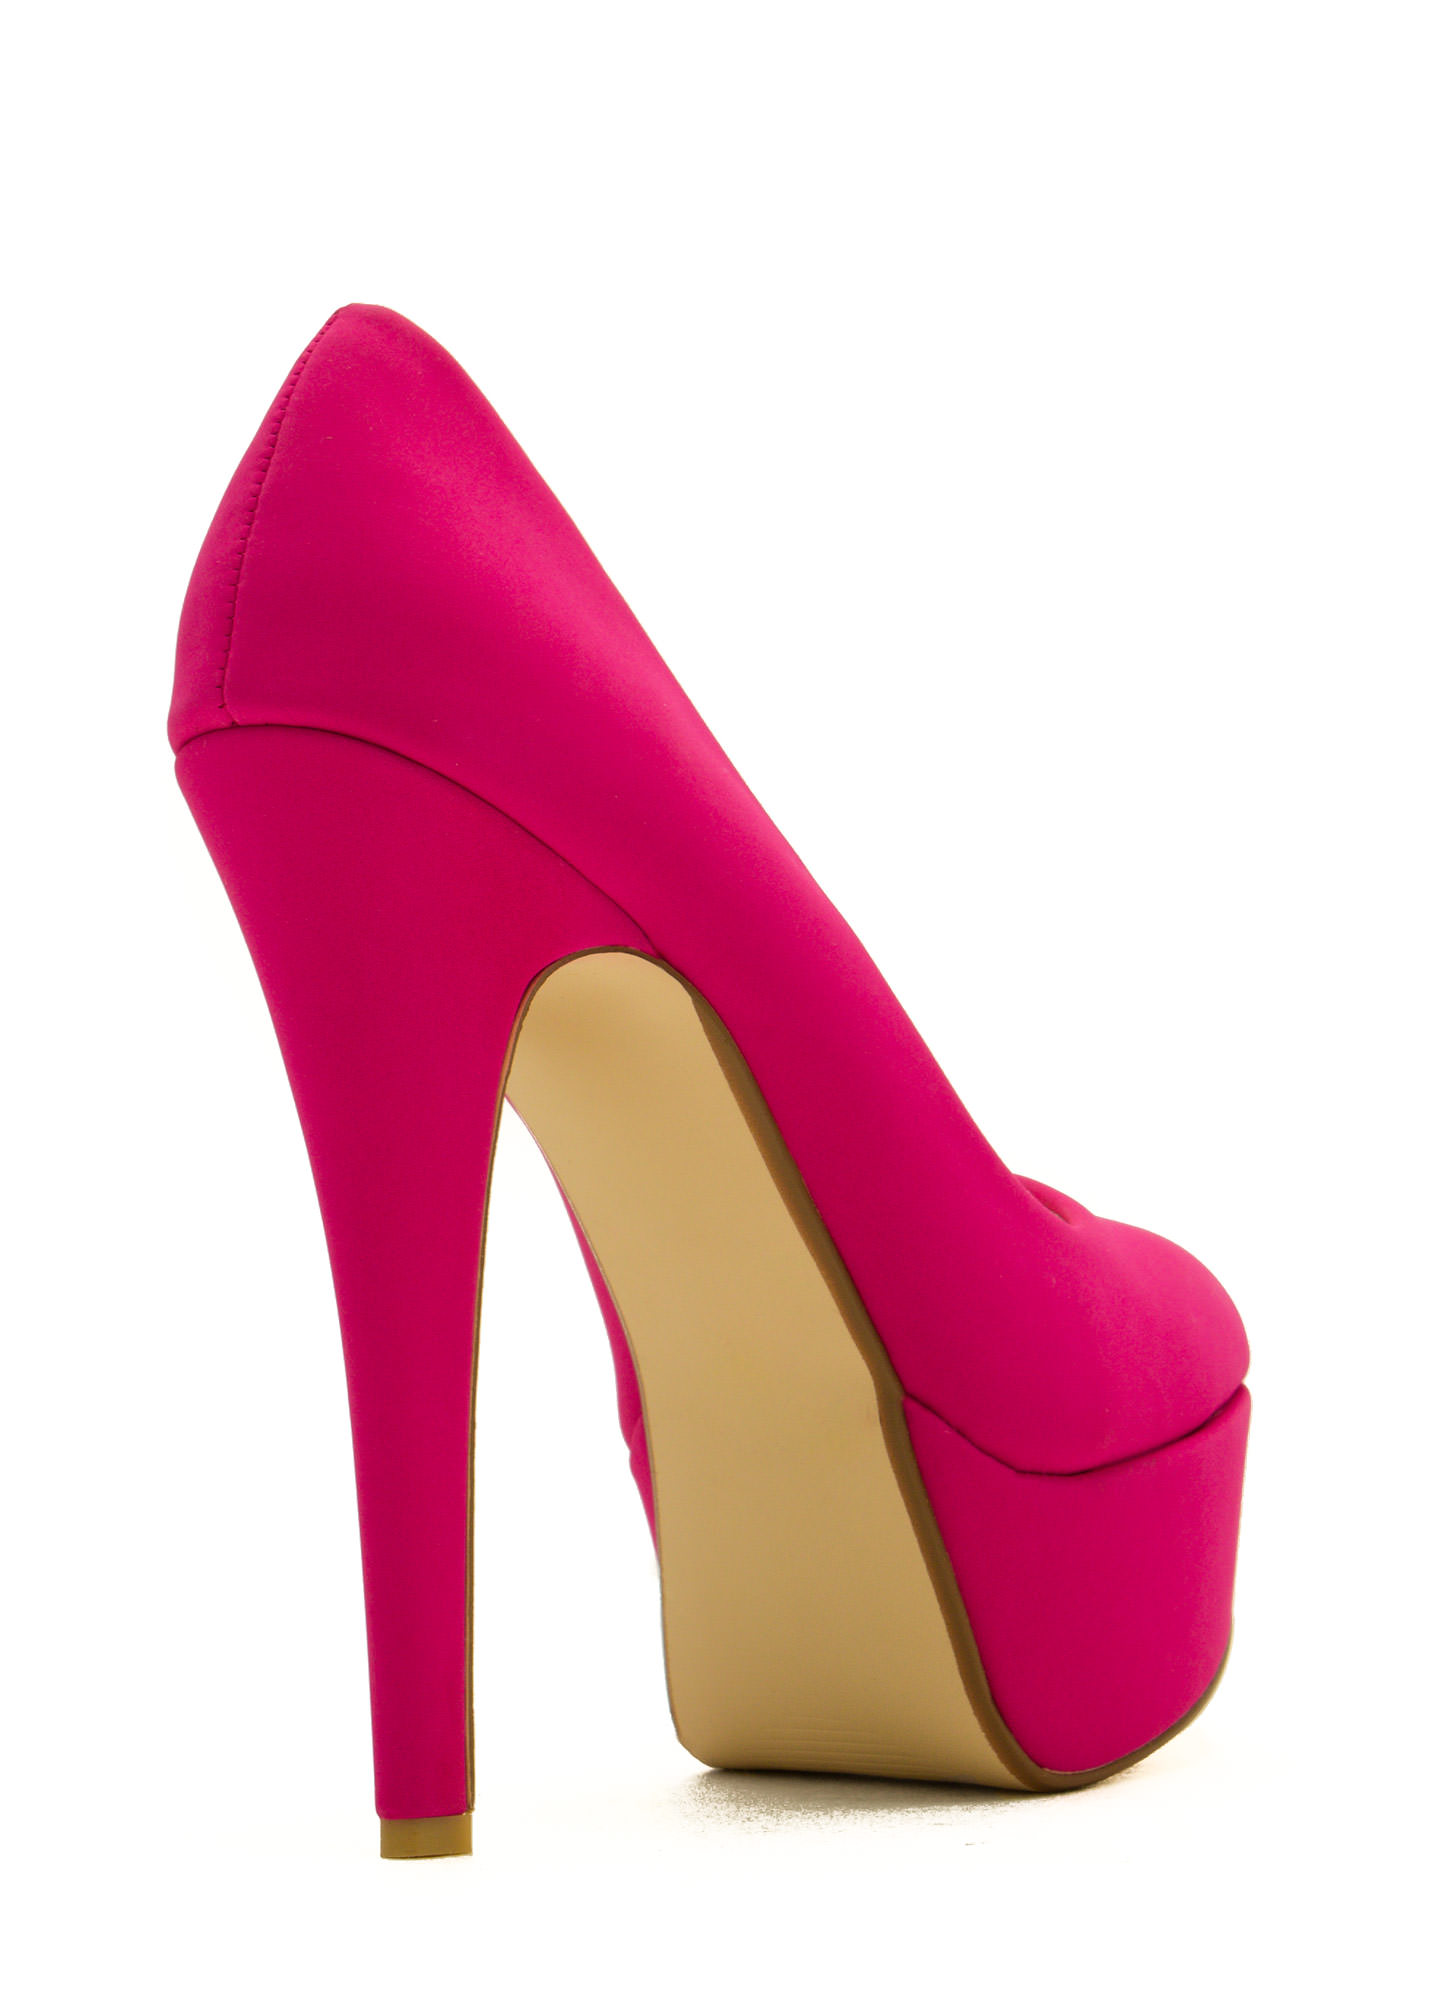 Simply Irresistible Platforms MAGENTA